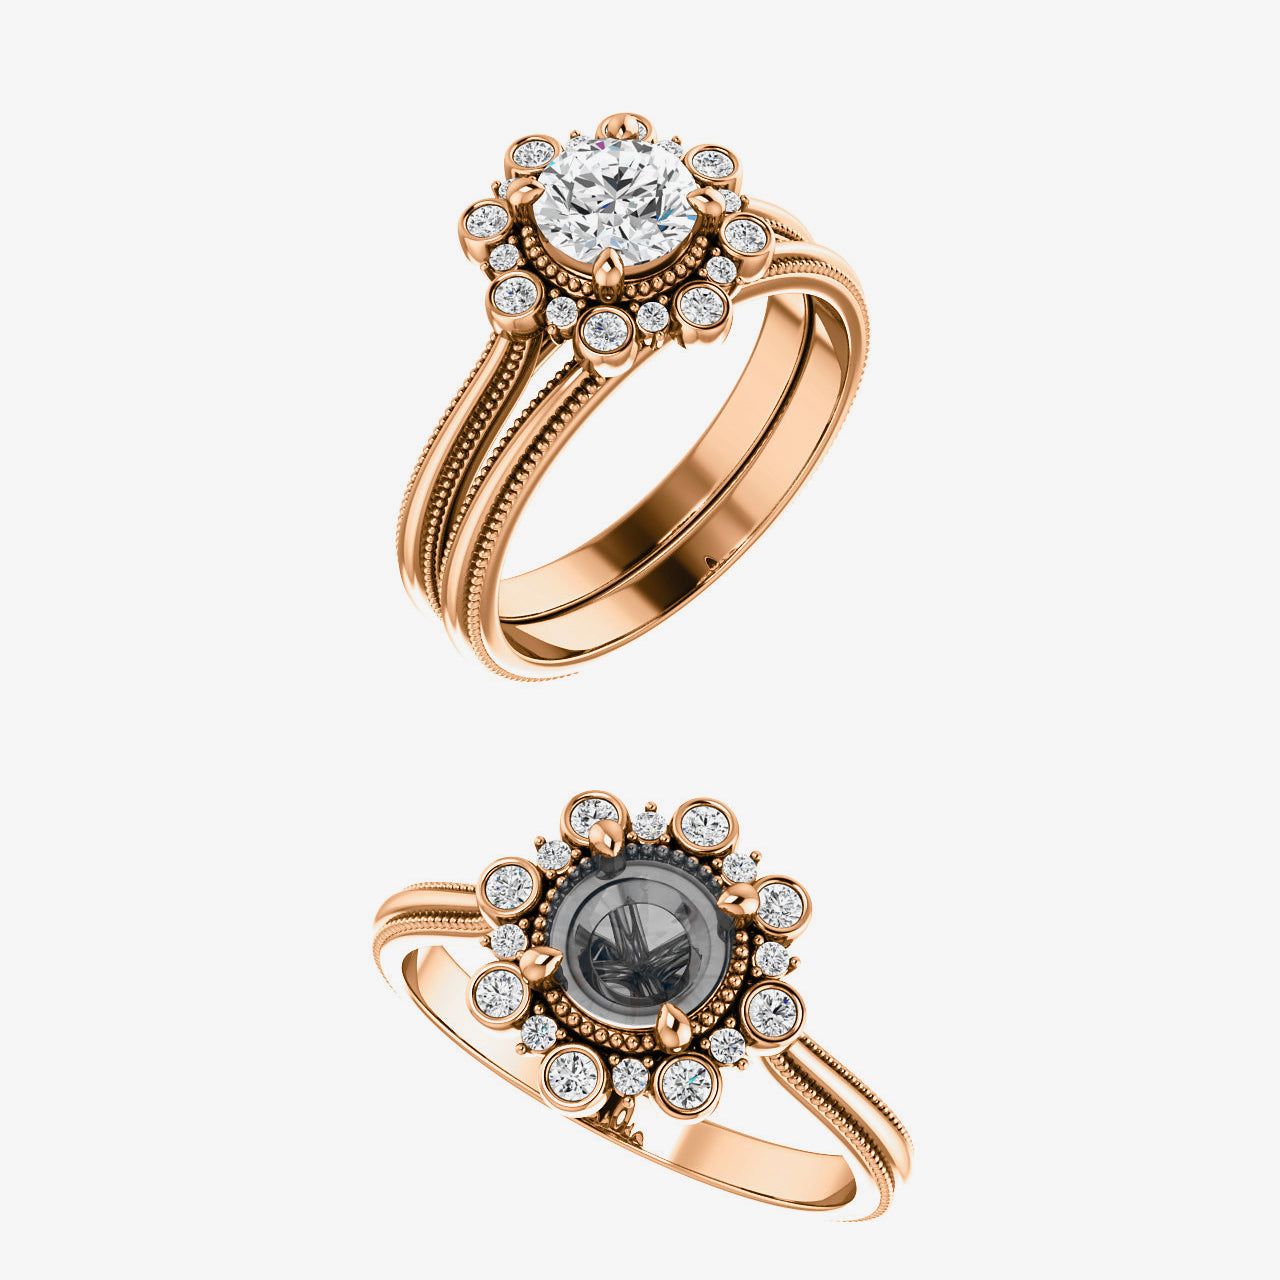 Presley Setting - Celestial Diamonds ® by Midwinter Co.